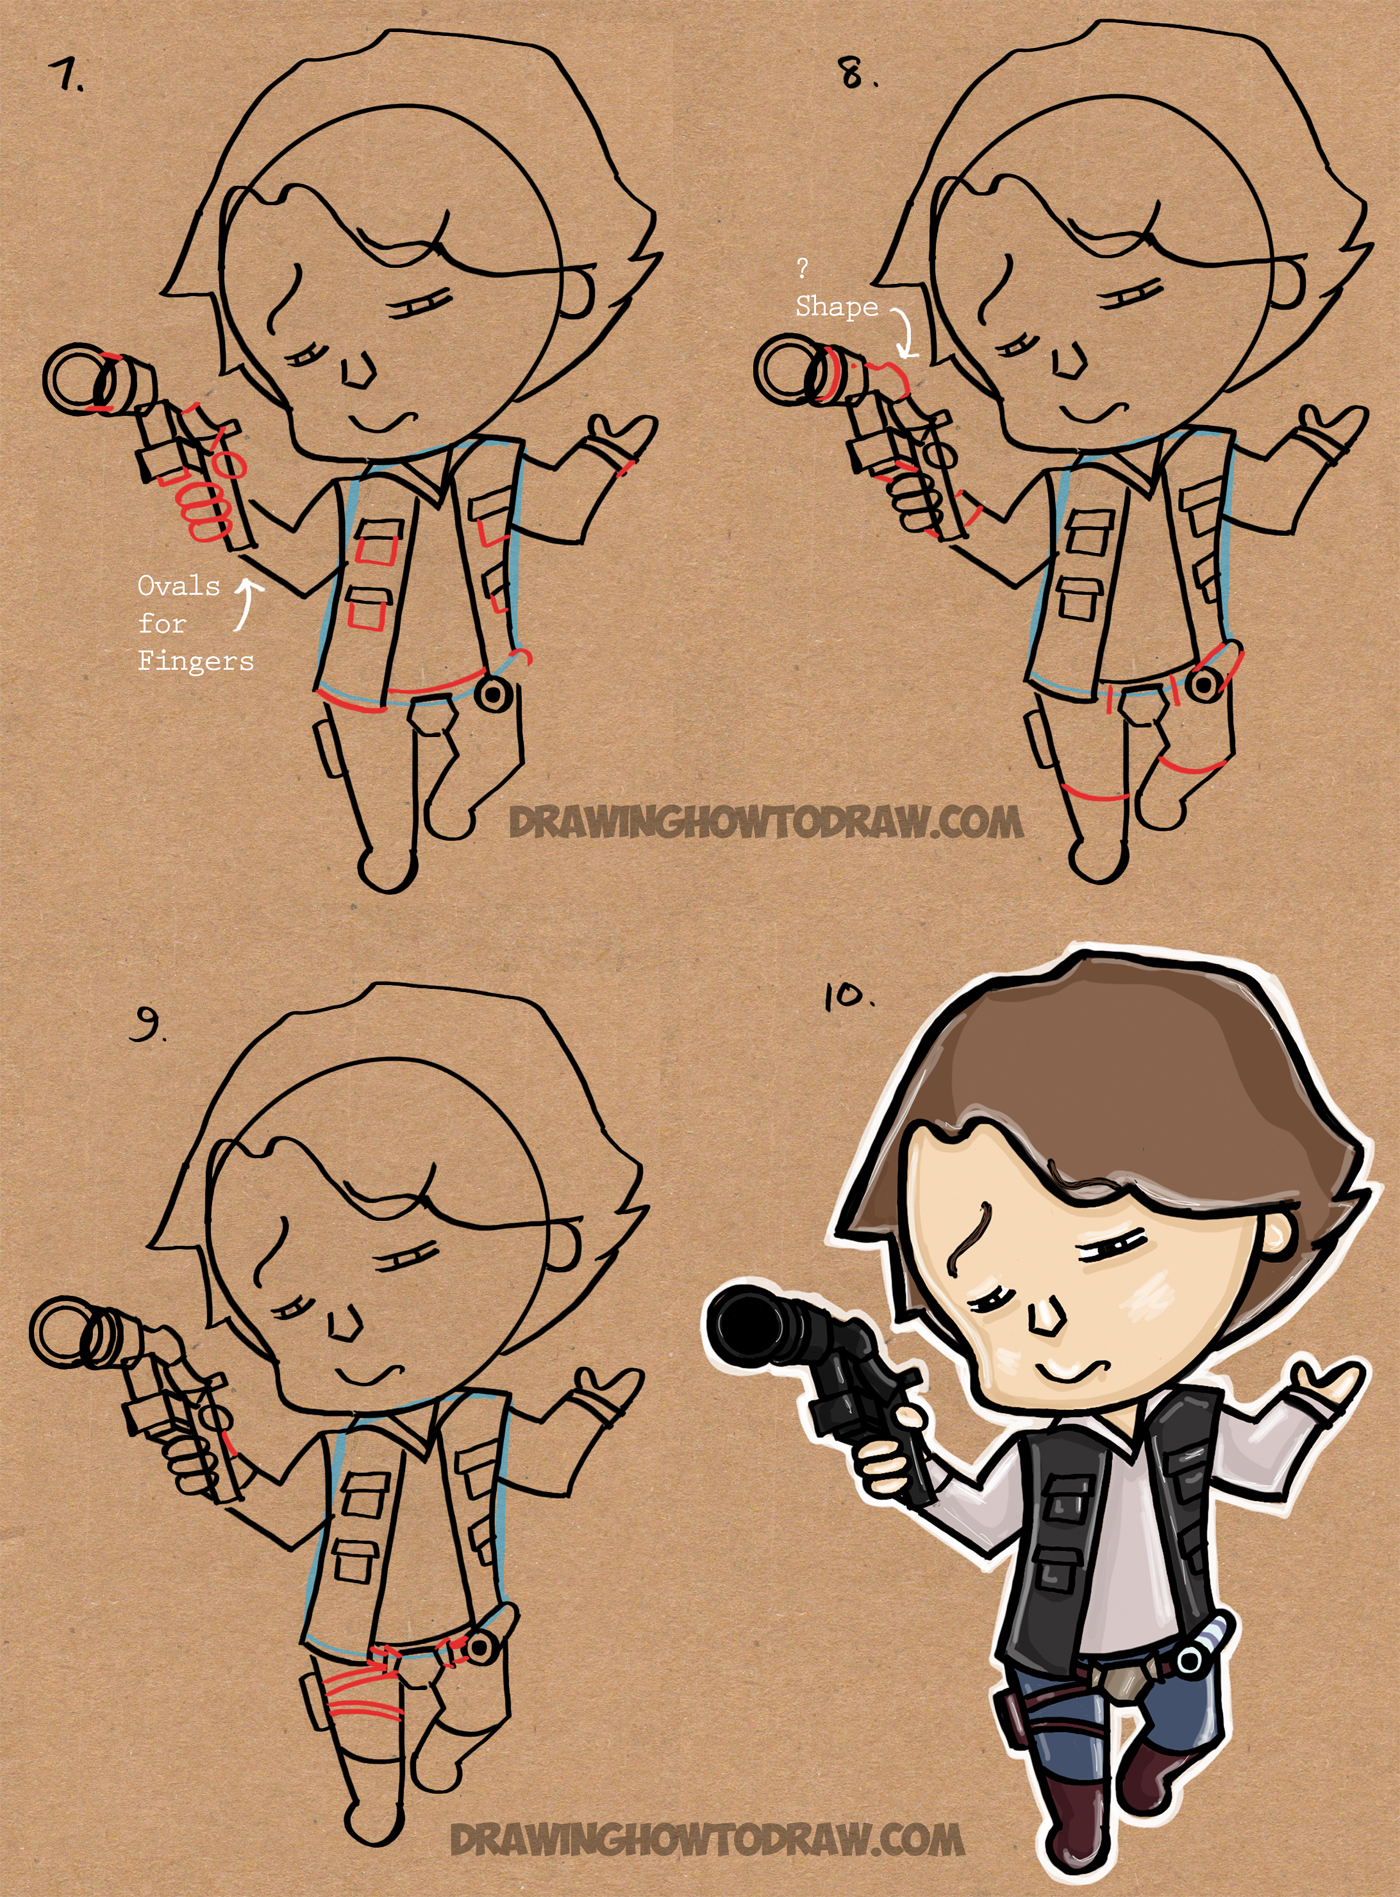 How to Draw Chibi Han Solo from Star Wars The Force Awakens